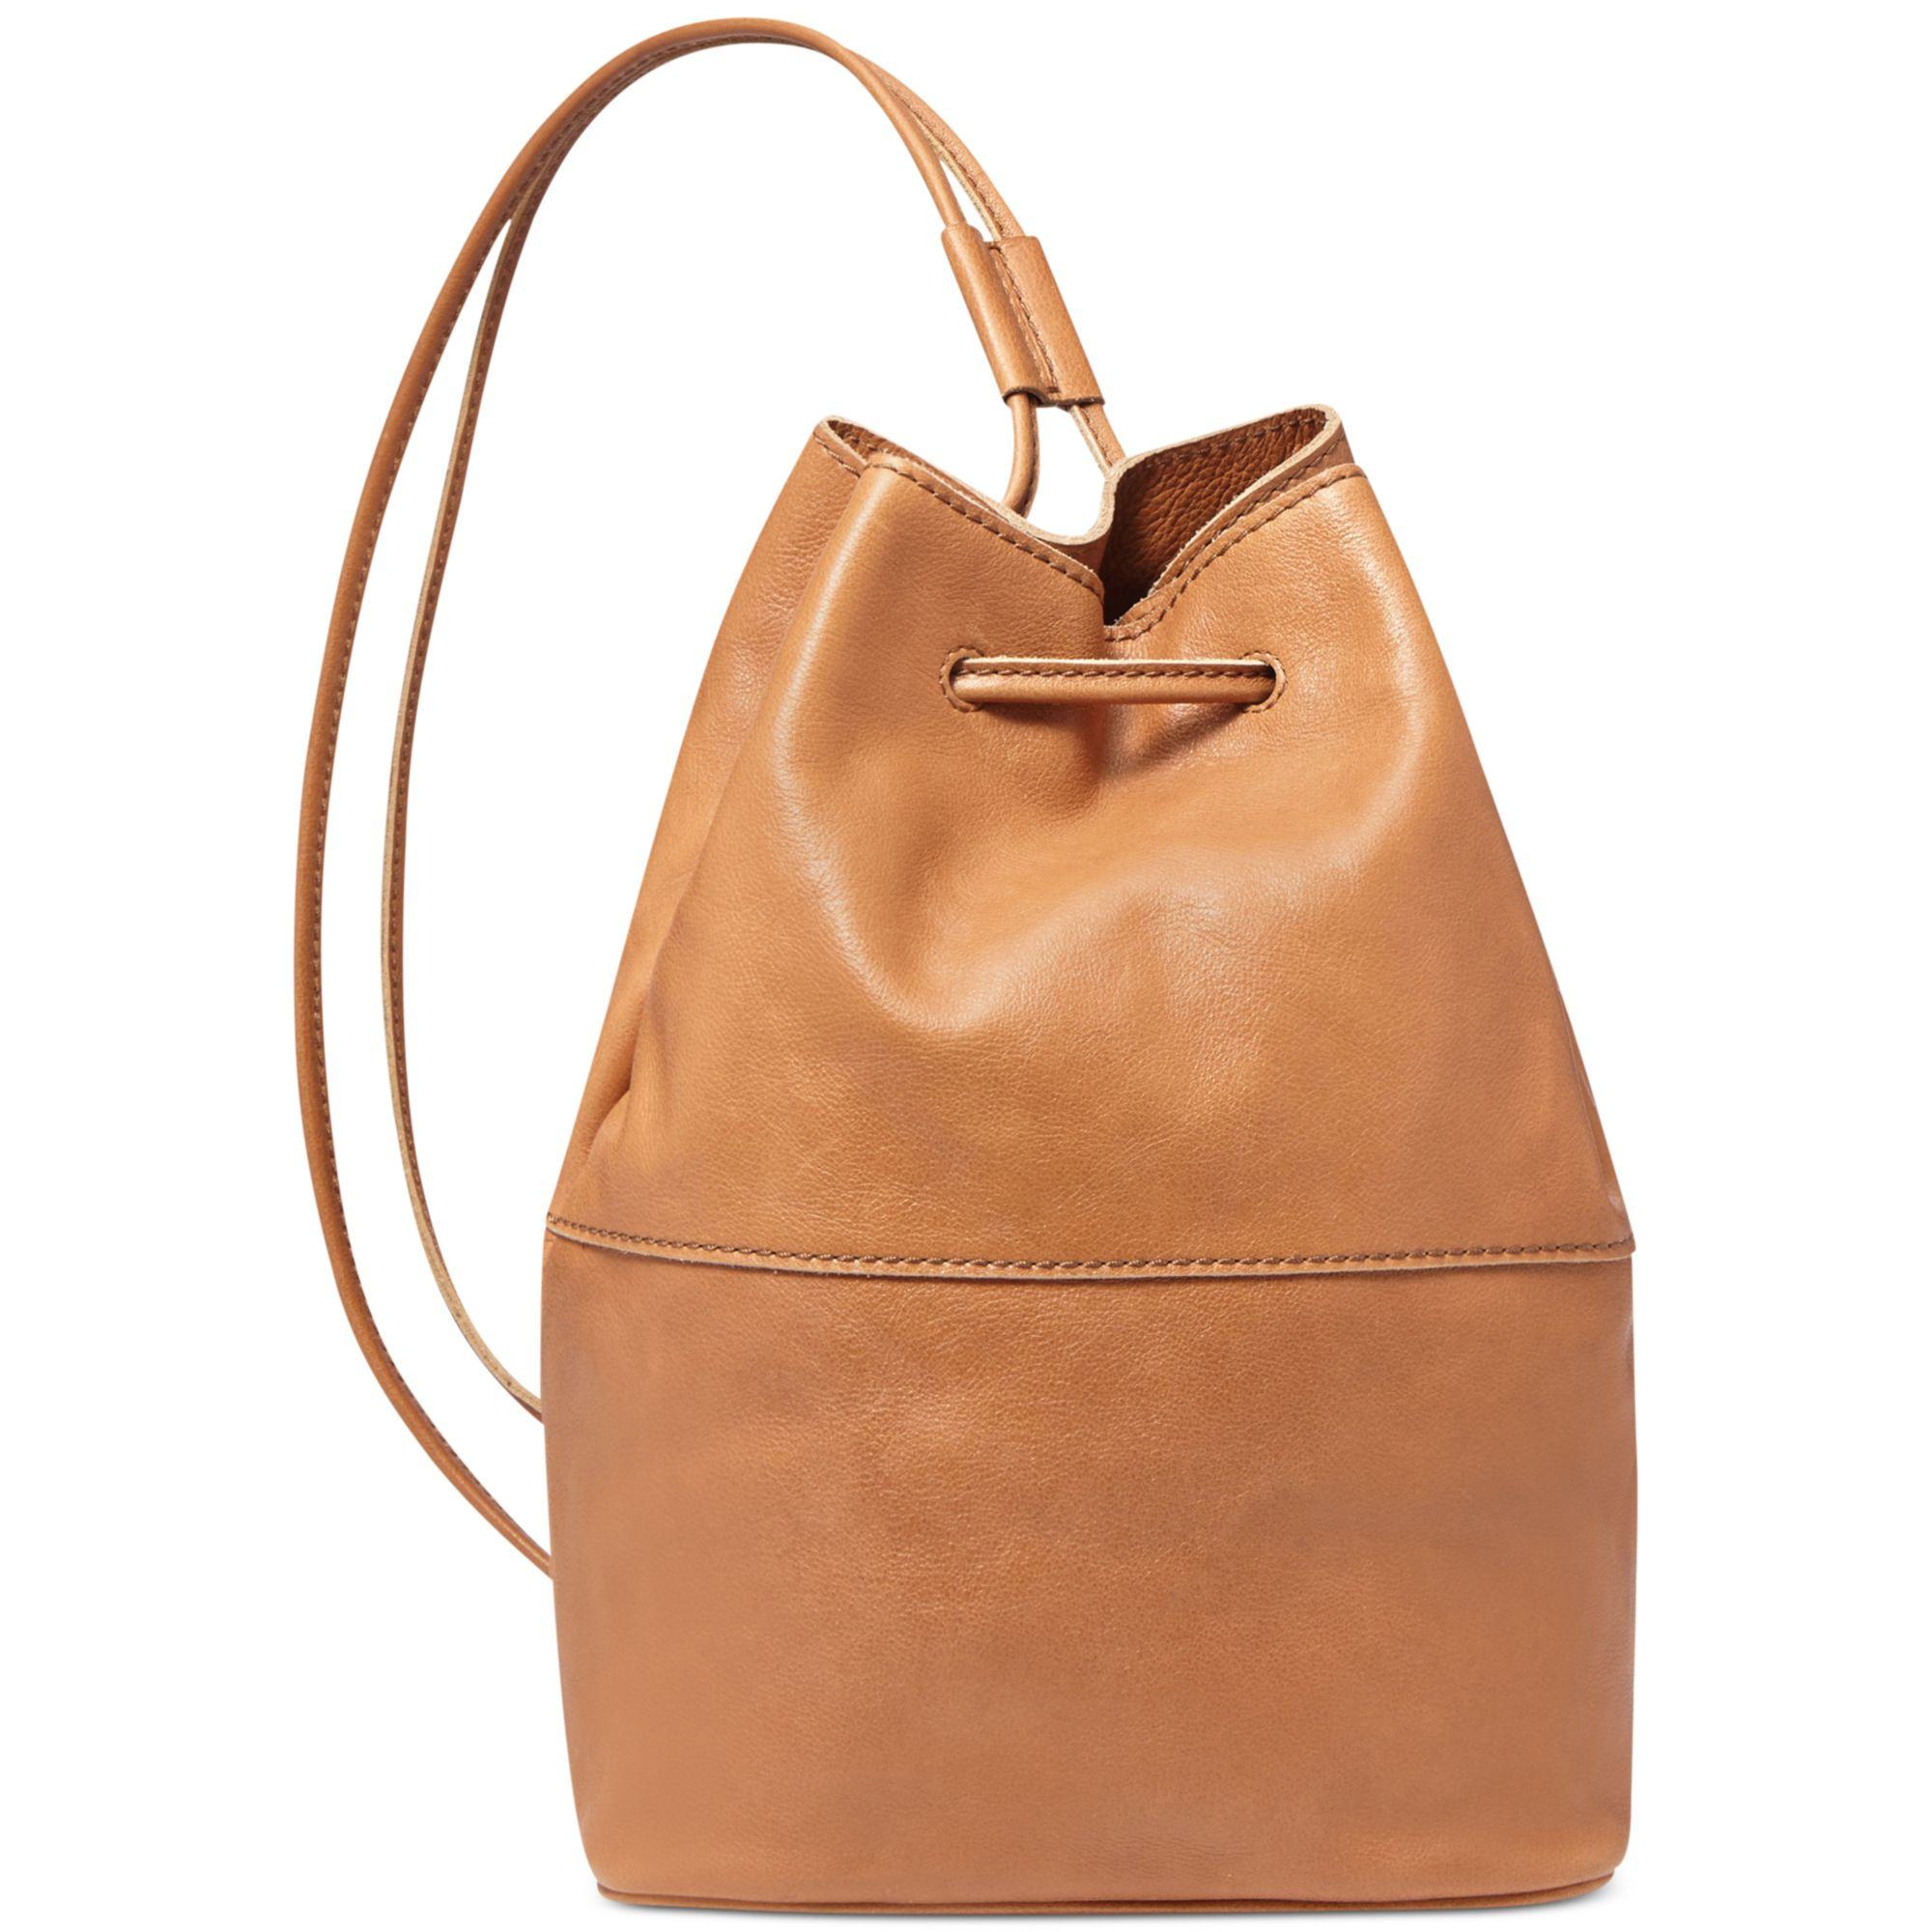 Sling bag leather - Gallery